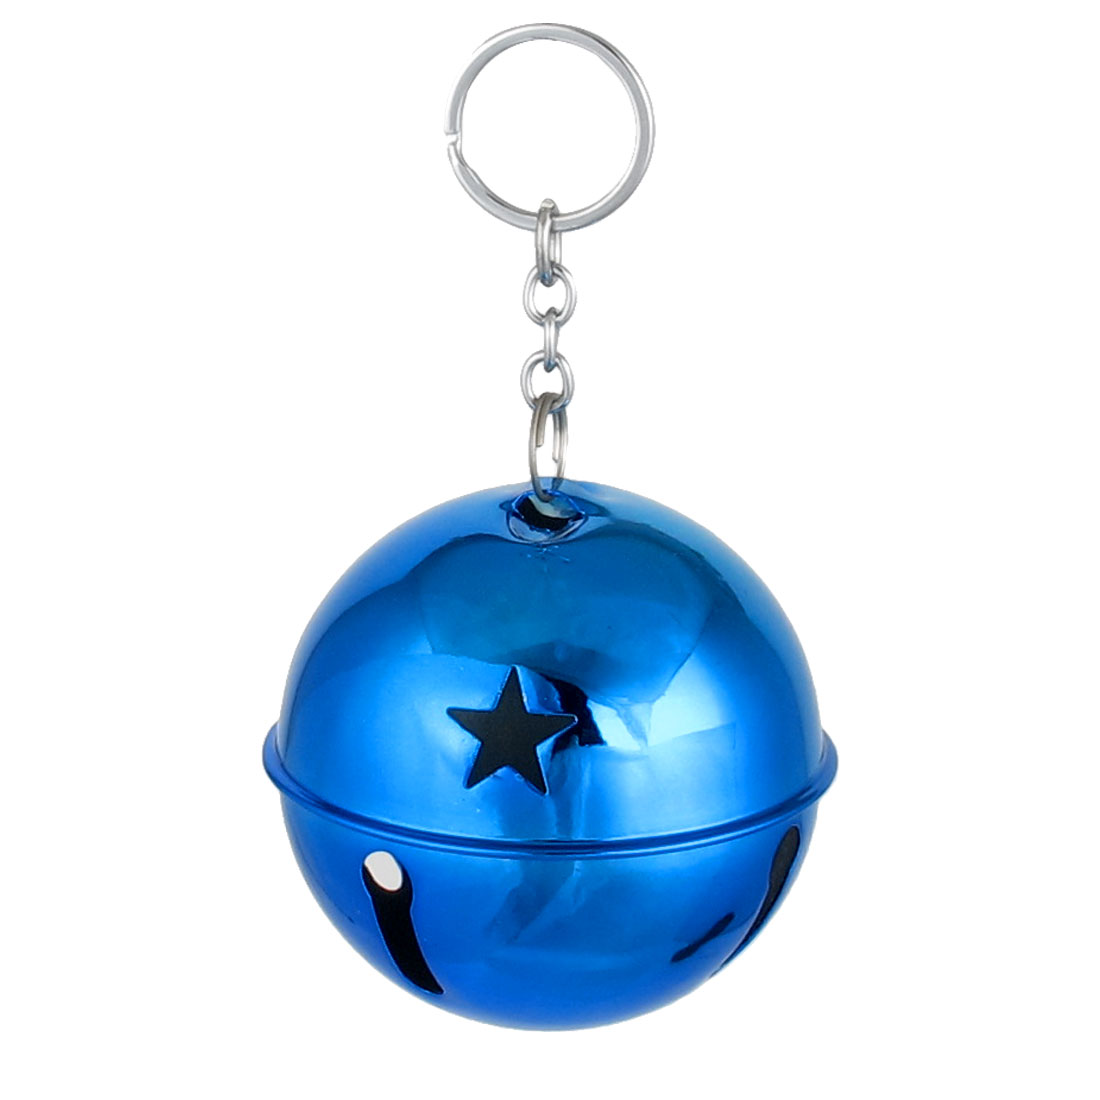 80mm Diameter Dark Blue Metal Keychain Split Star Hollow Out Design Ring Bell Ornament for Xmas Celebration Case Backpack Purse